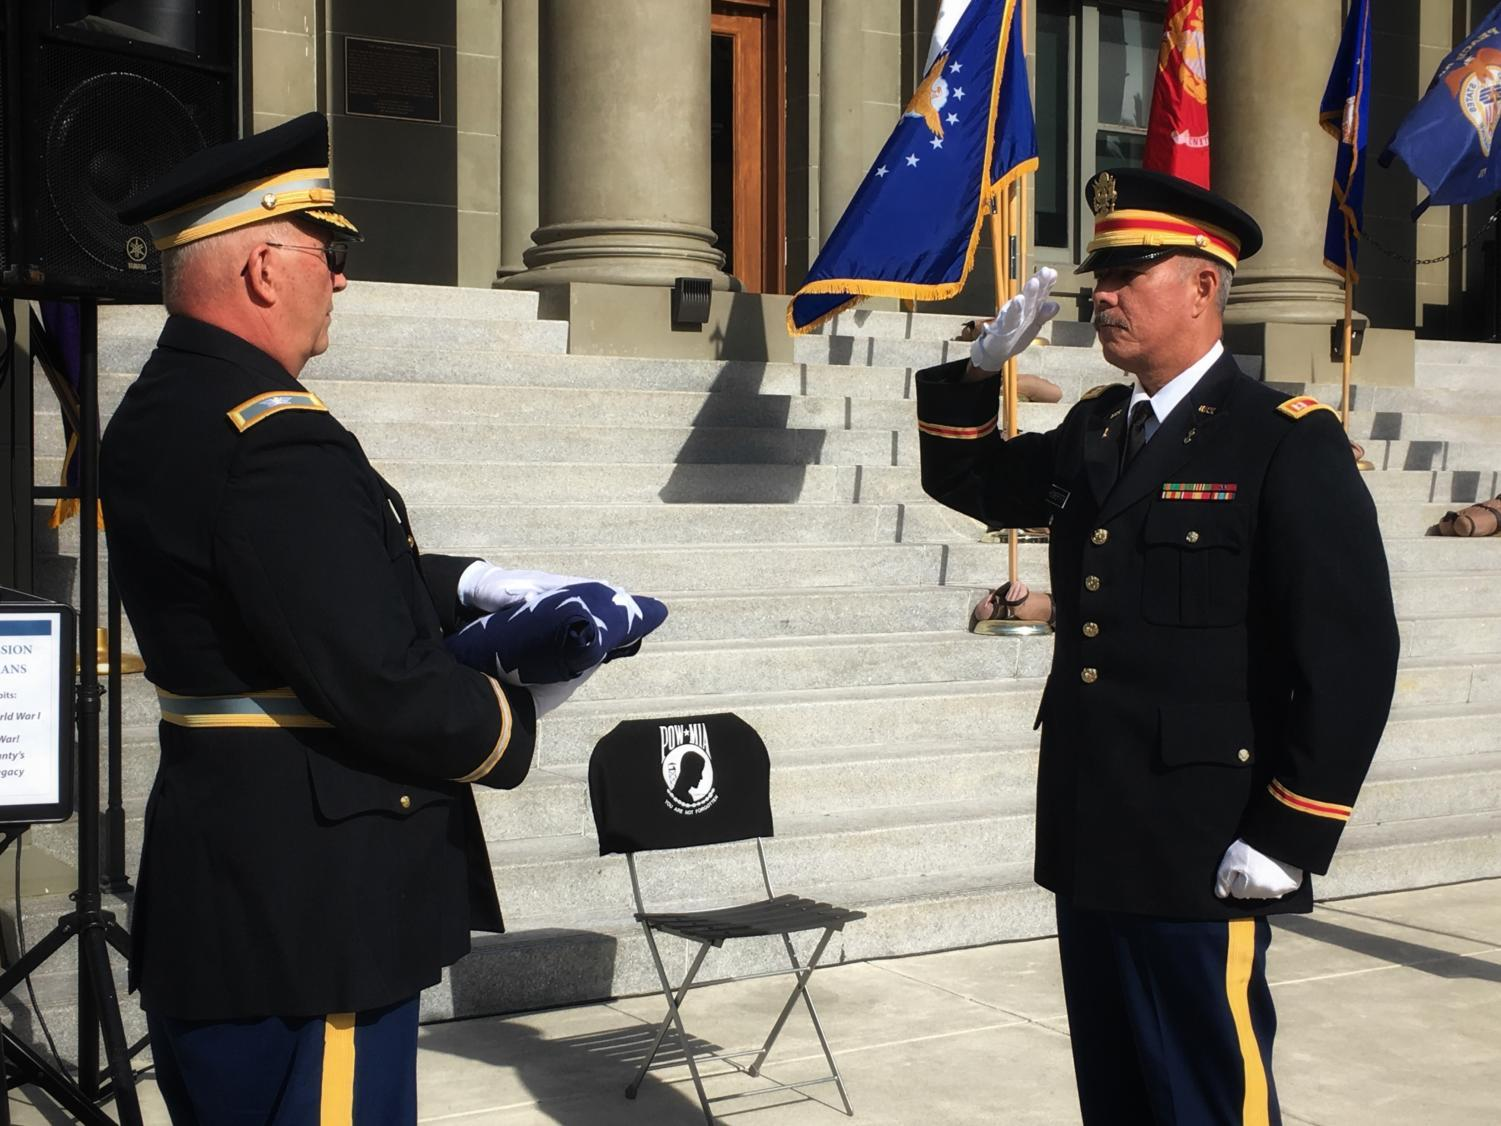 The Flag-Folding Ceremony is one of the many events held at the Redwood City Celebration honoring the military service of men and women in the United States.